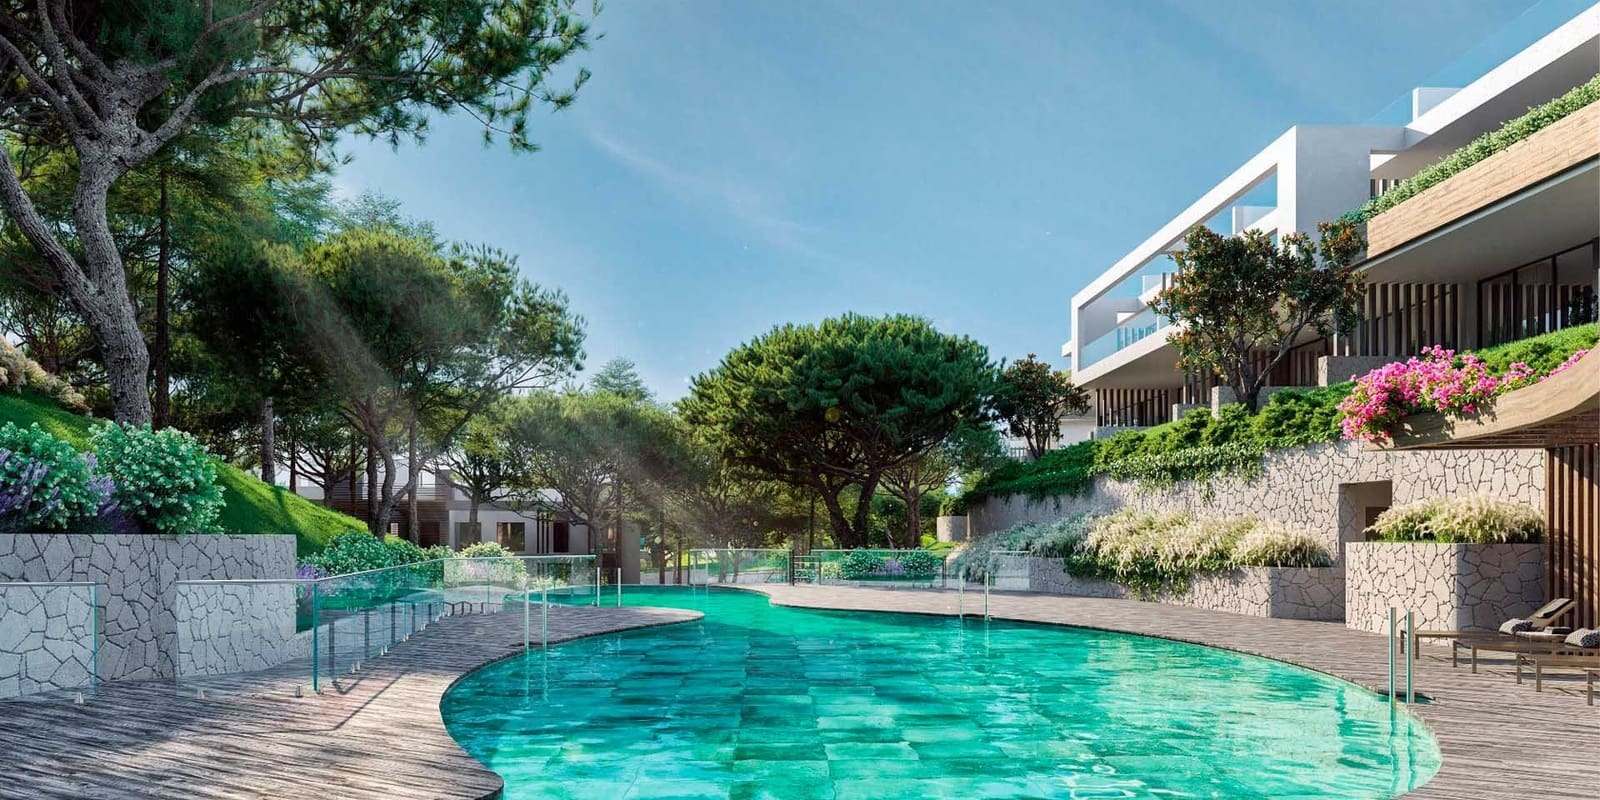 2 bedroom Apartment for sale in Marbella with pool garage - € 430,000 (Ref: 4995185)